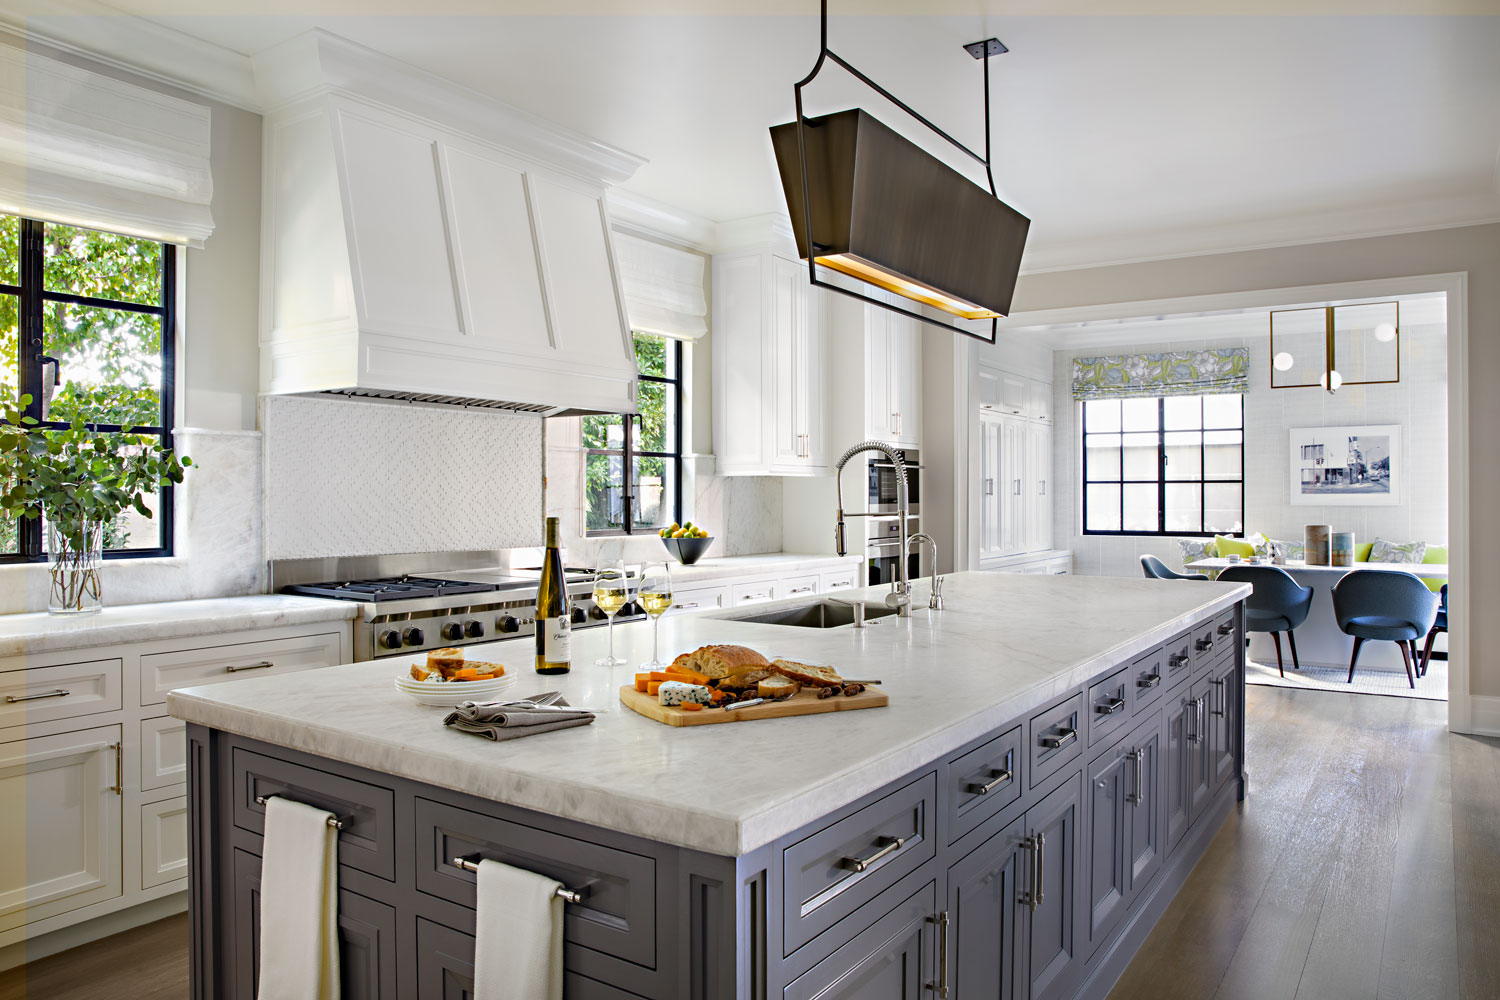 10-chefs-kitchen-marble-countertops-island-gary-drake-general-contractor.jpg